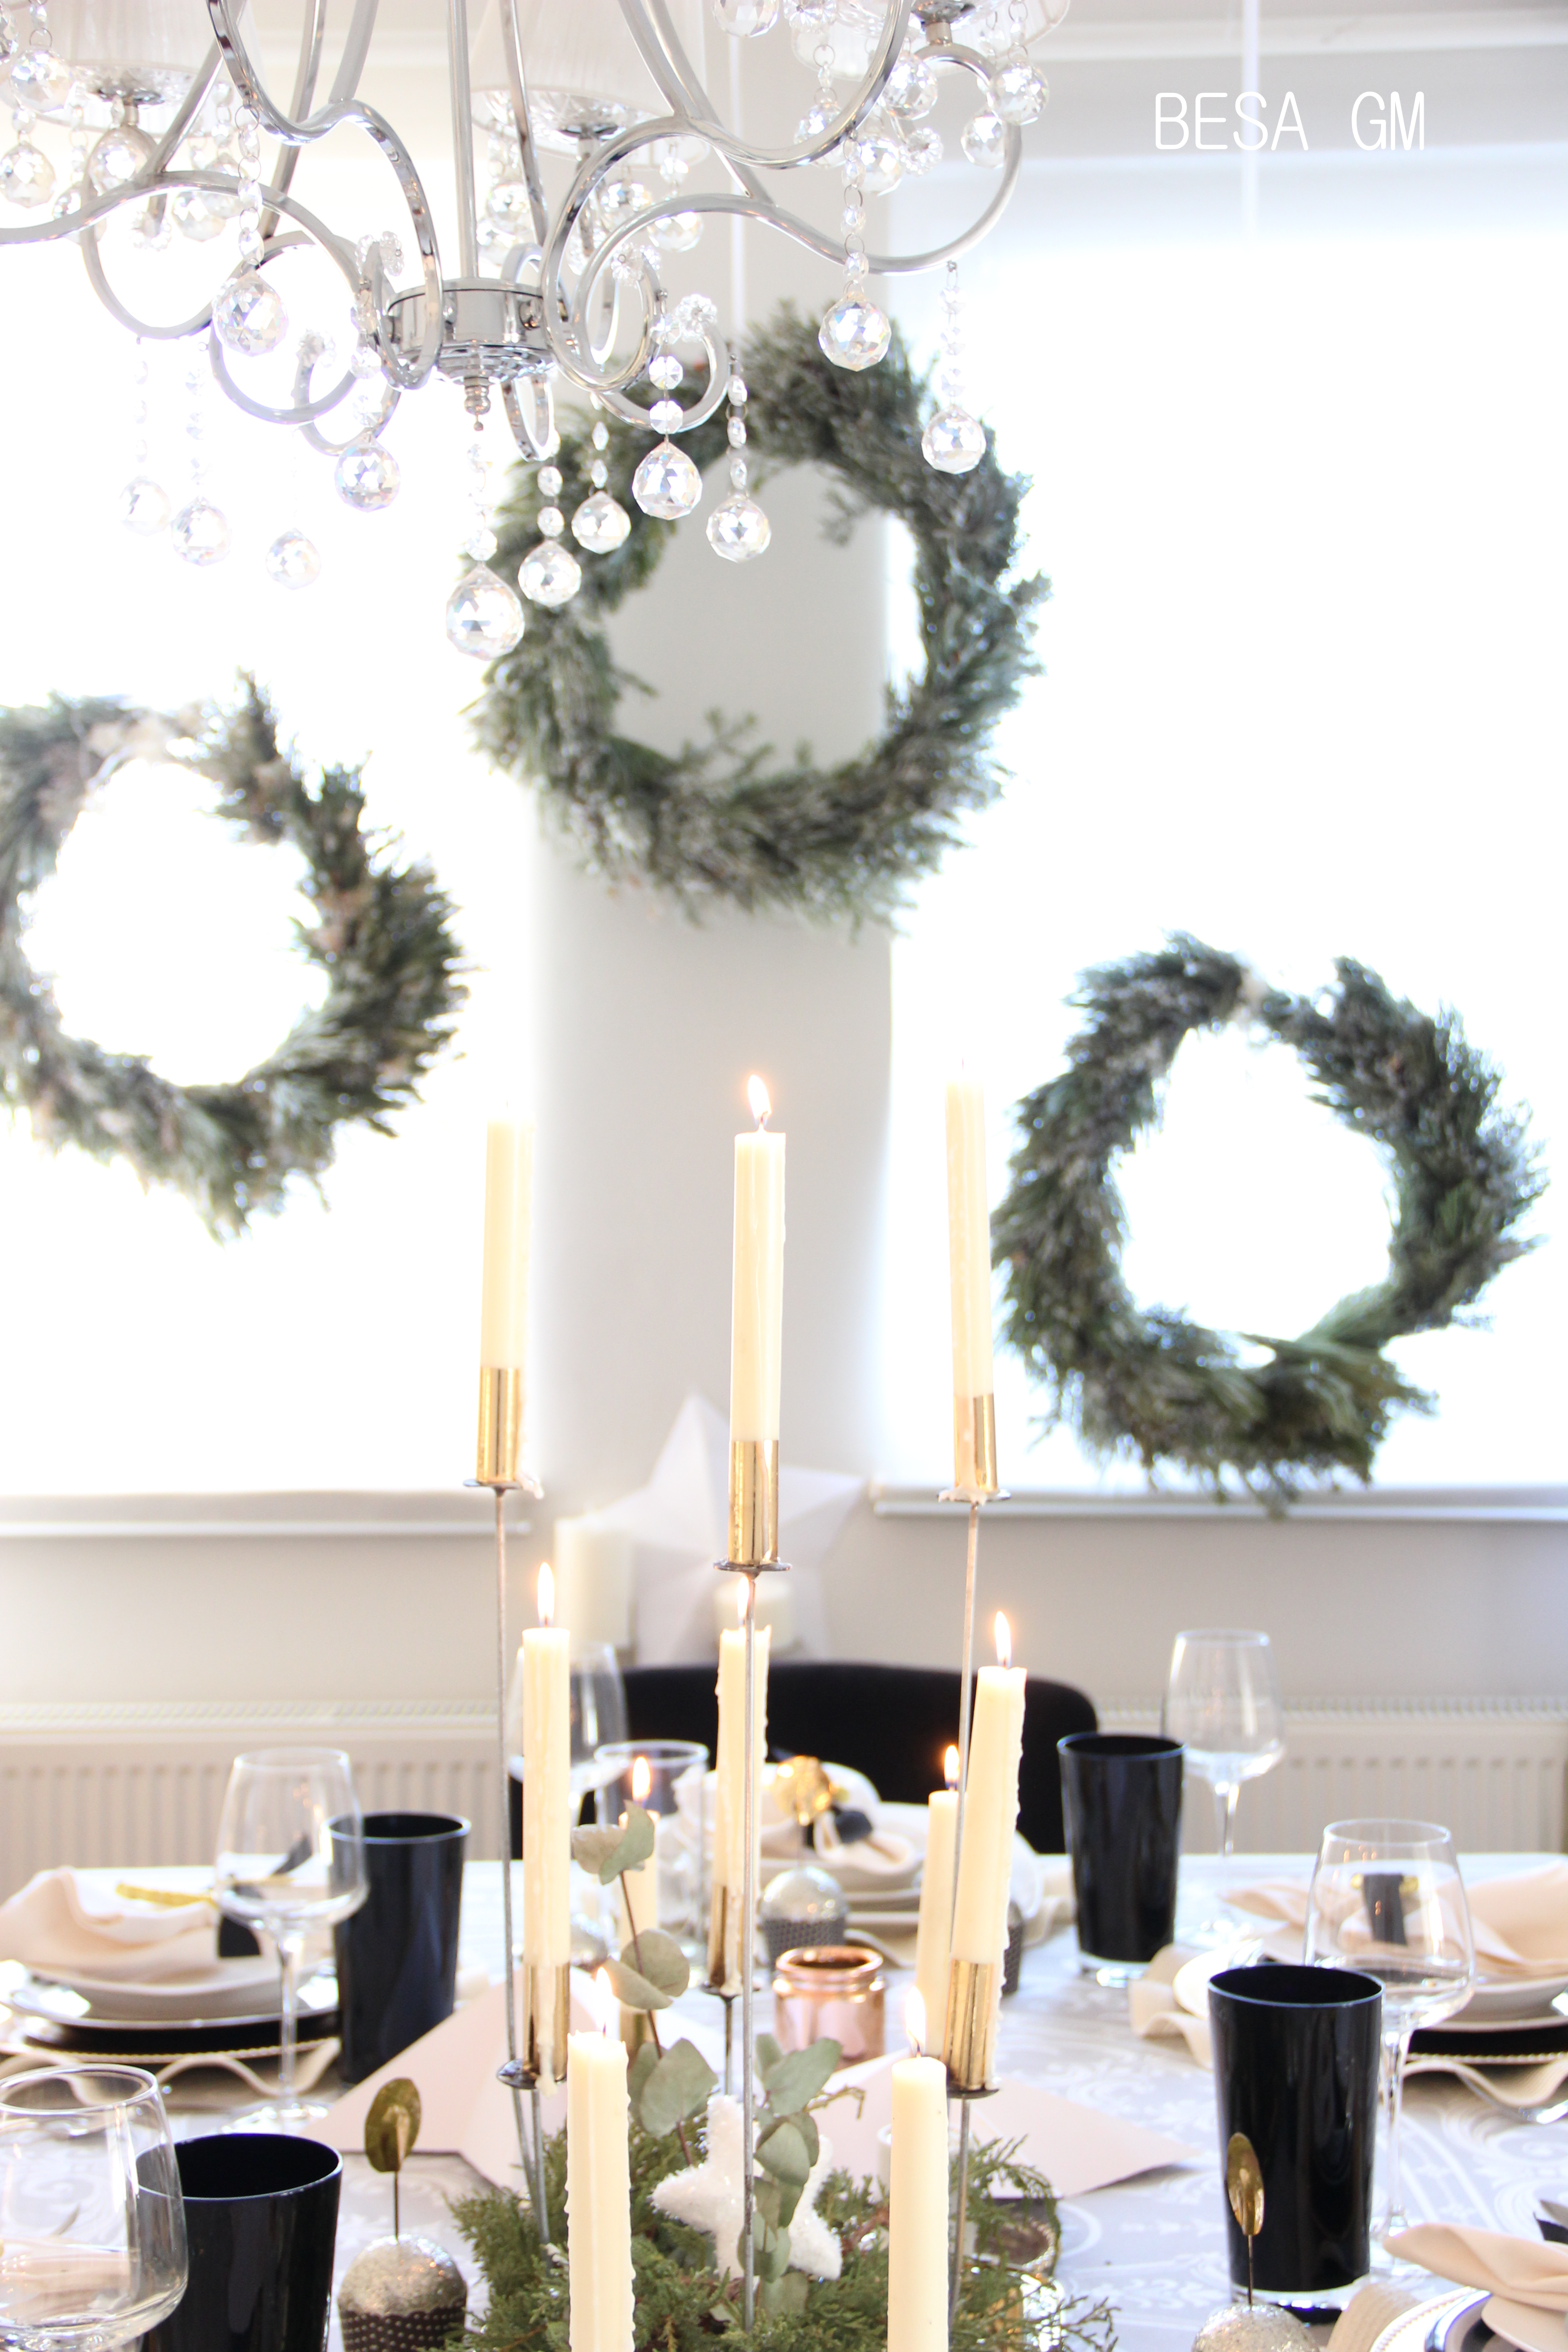 December 2016 besa gm flocked wreaths are diy too i just looooove their look they added such a classy and dreamy look to the whole table set up adding them in clusters solutioingenieria Gallery